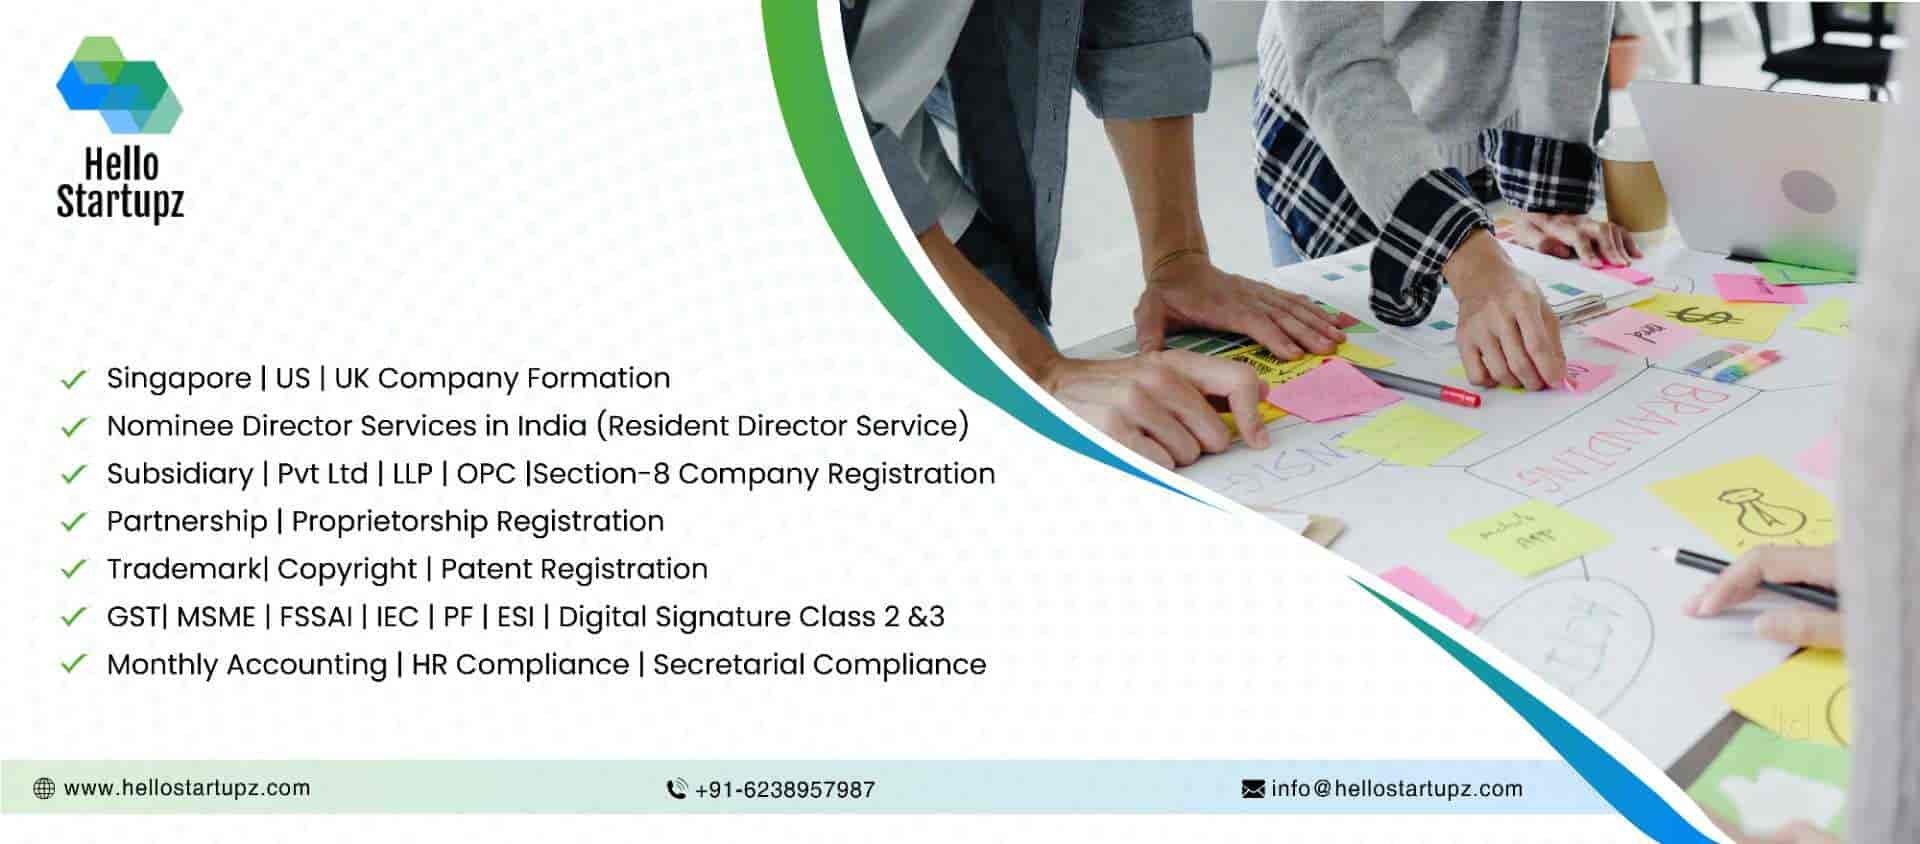 Investment advisory firm registration in bangalore proforexunion